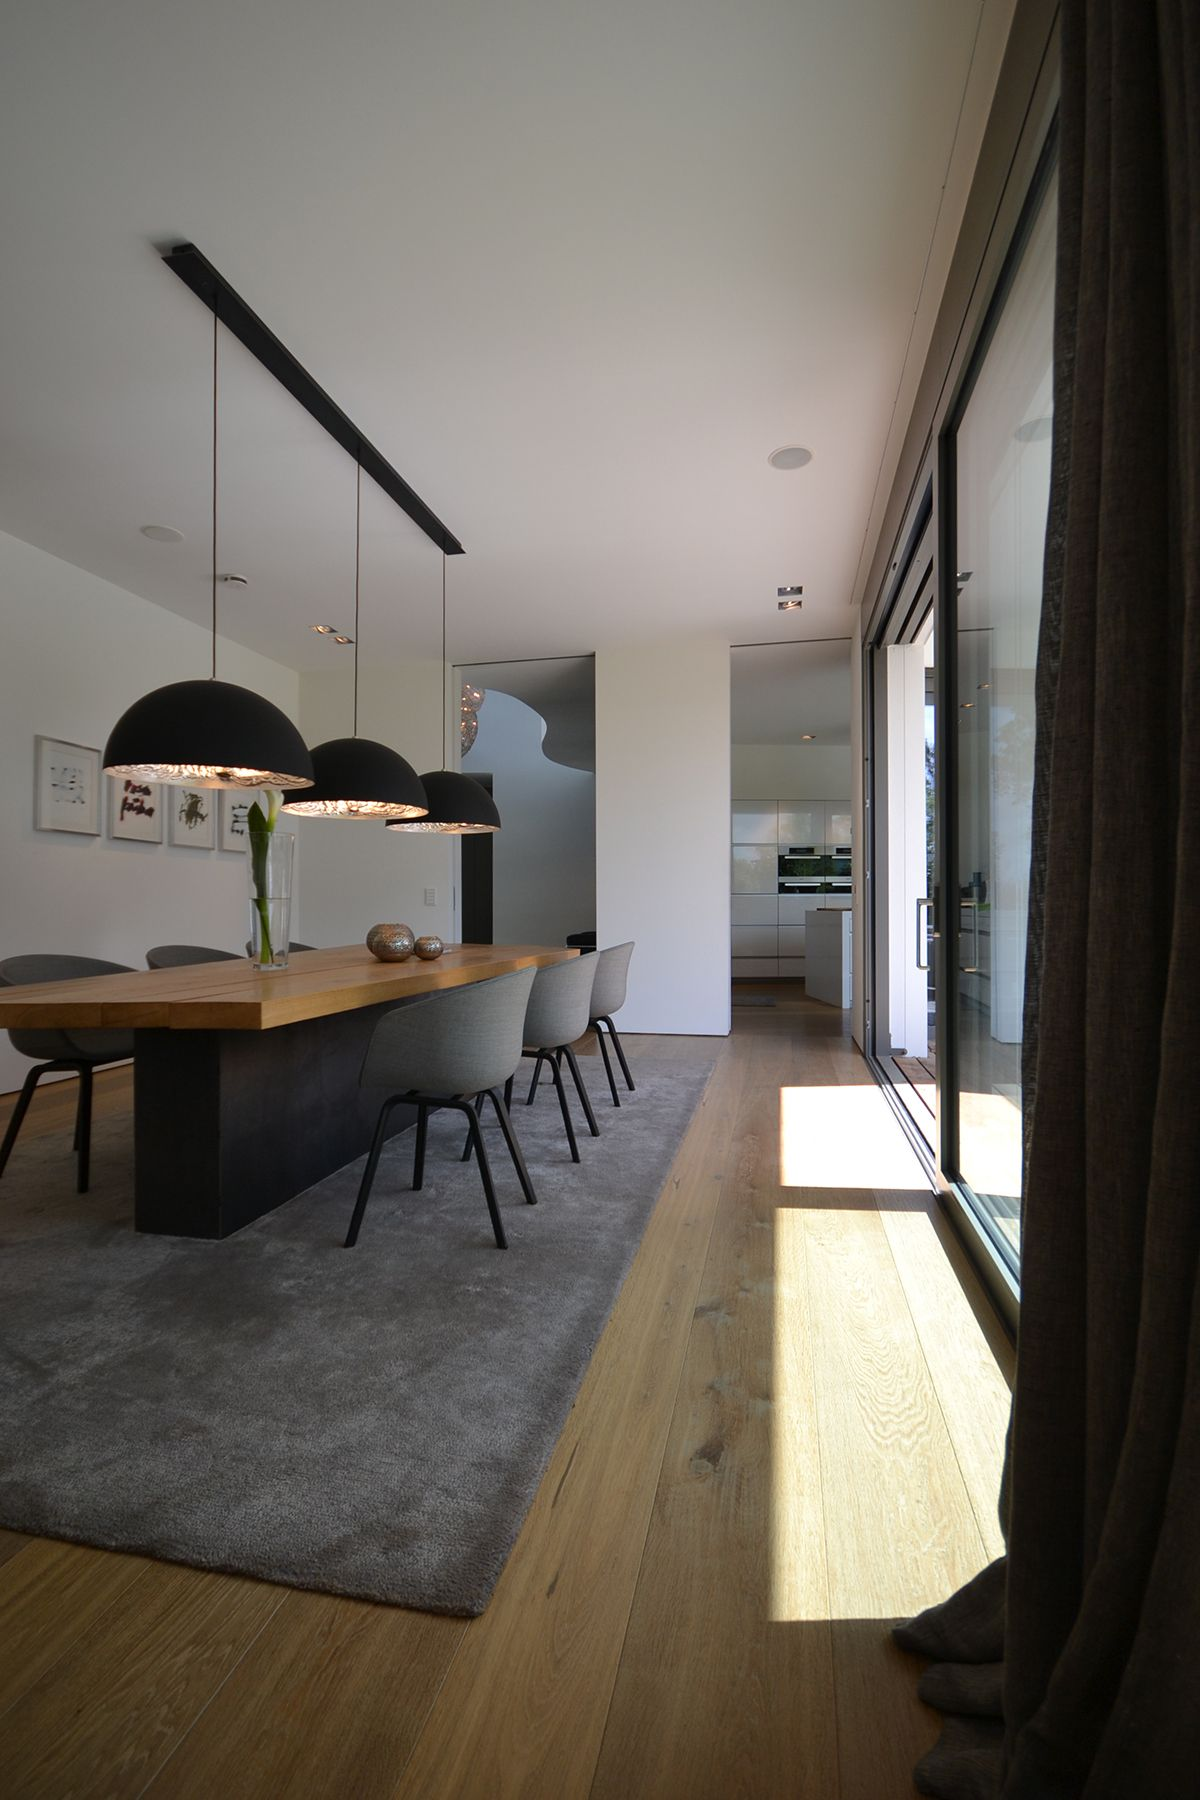 Bünck Architektur :: bergisch gladbach | New apartment | Pinterest ...